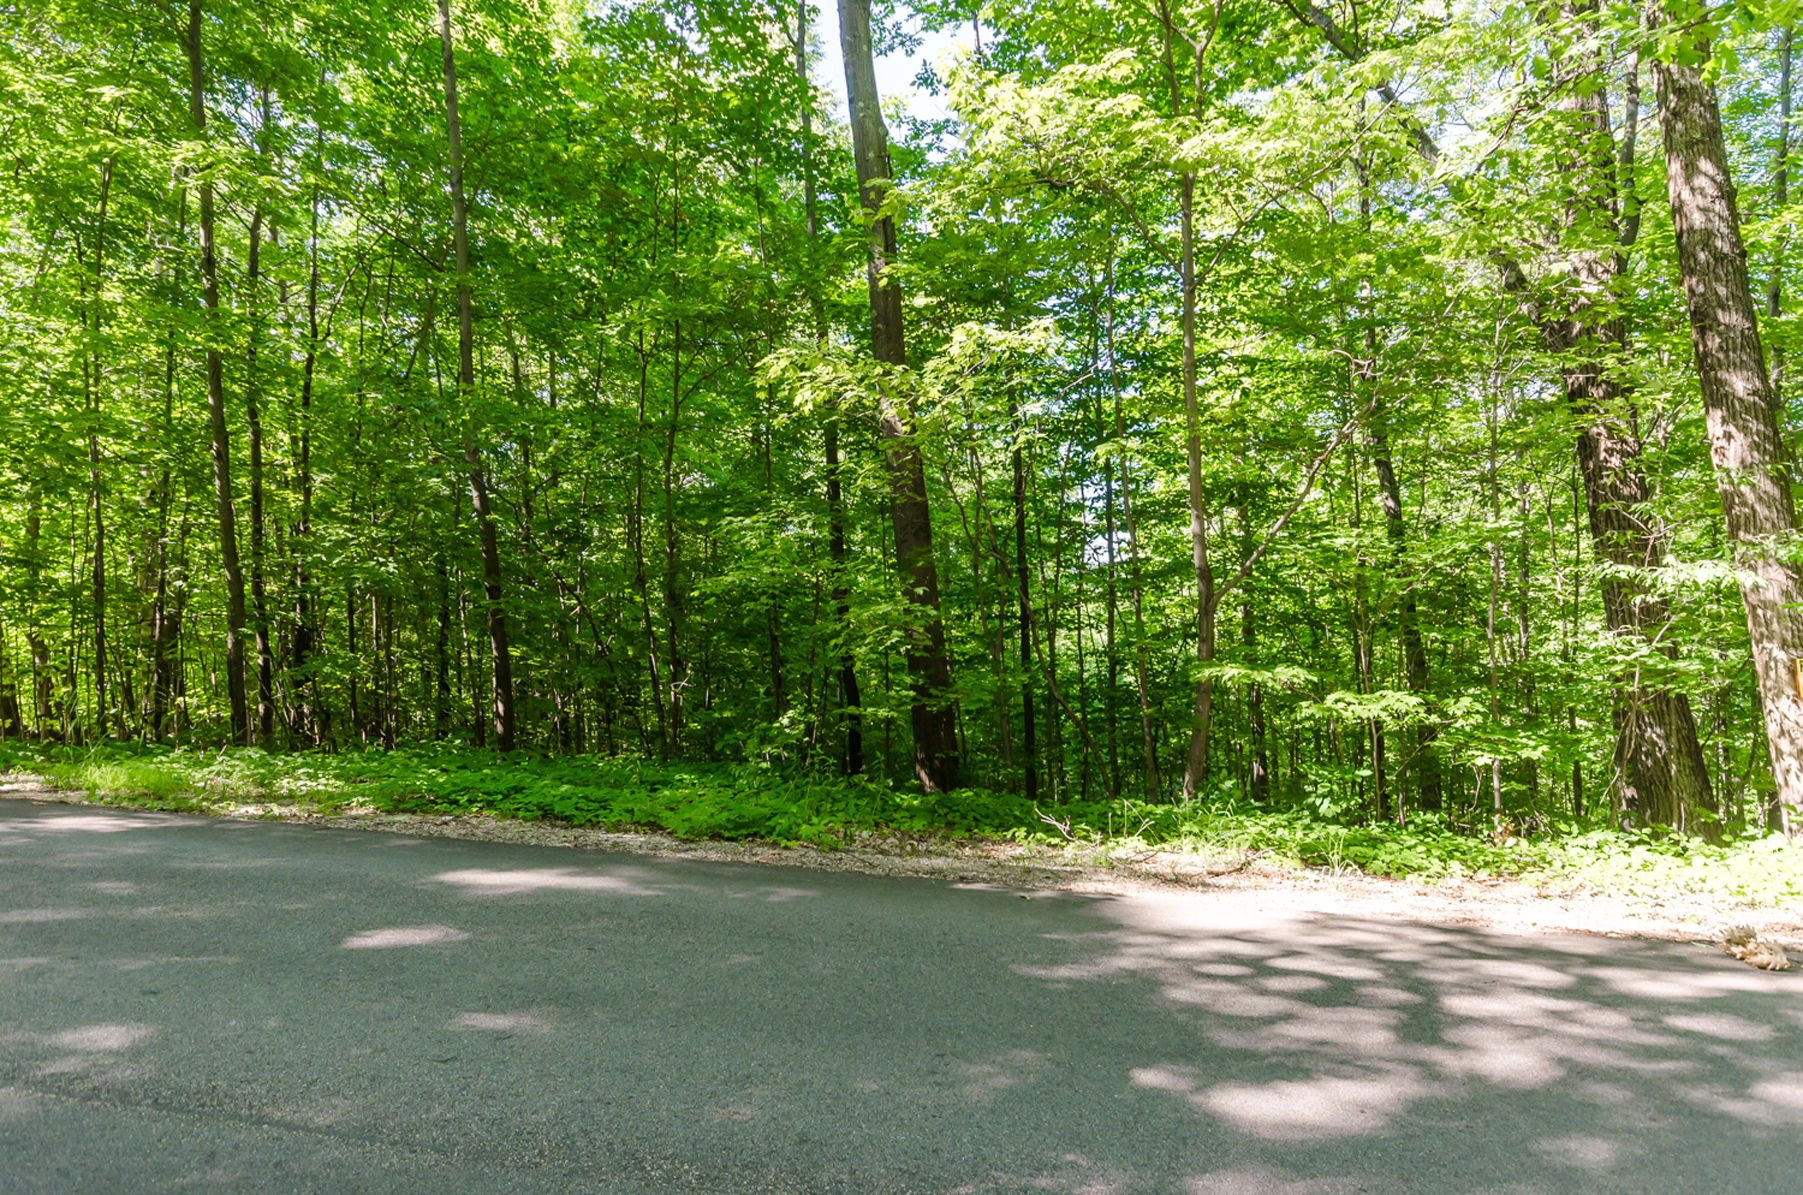 Land for Sale at Lot 20 Mountain Rd, Francestown Francestown, New Hampshire, 03043 United States